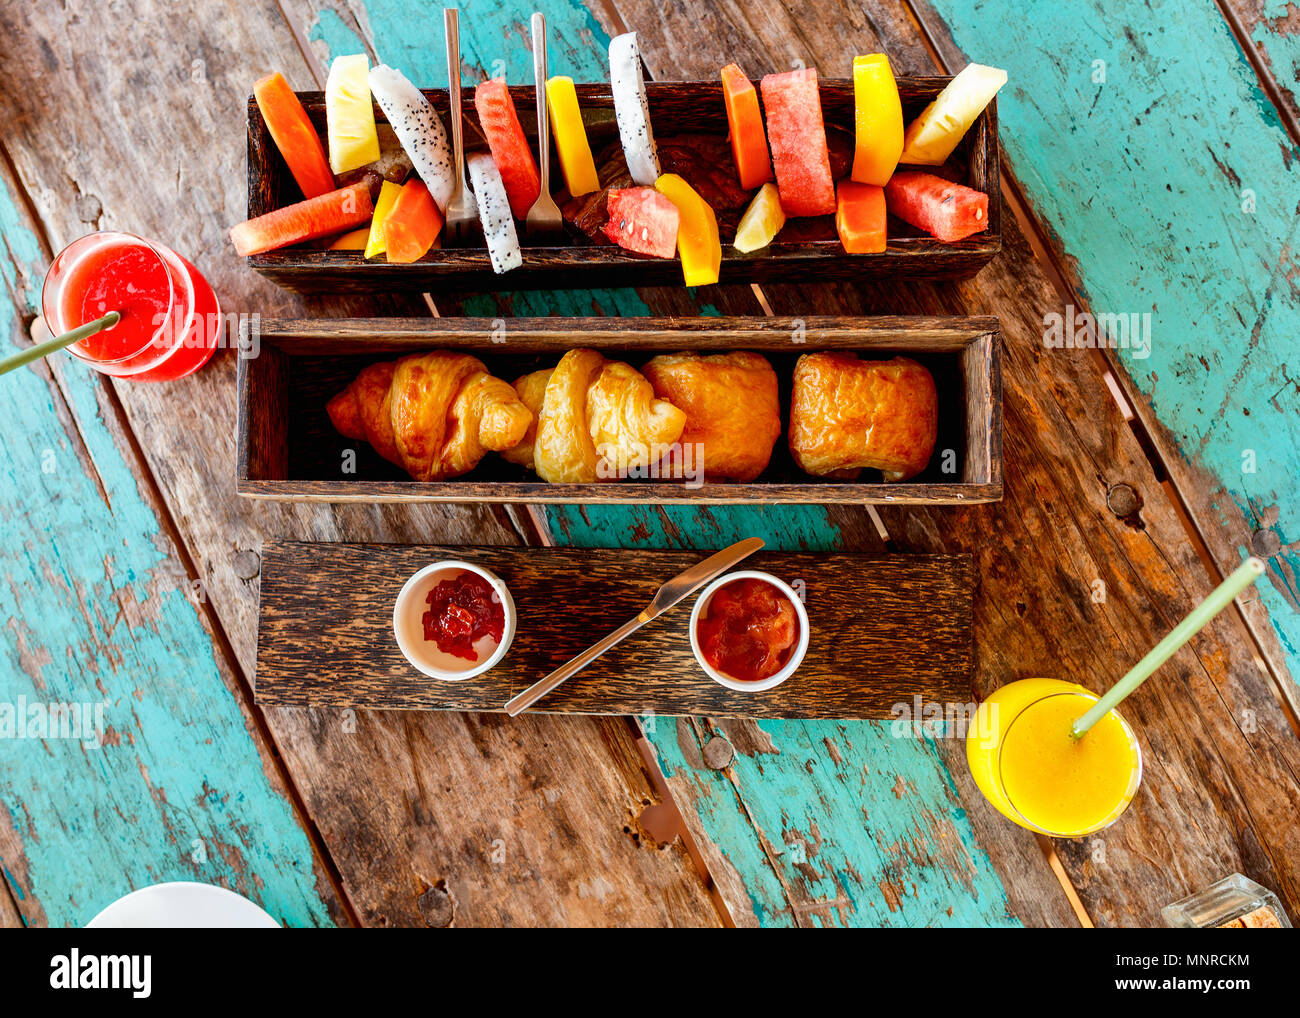 Top view of delicious organic food served for breakfast on rustic wooden table. Fruits,  juice,  croissants and jam flat lay. - Stock Image